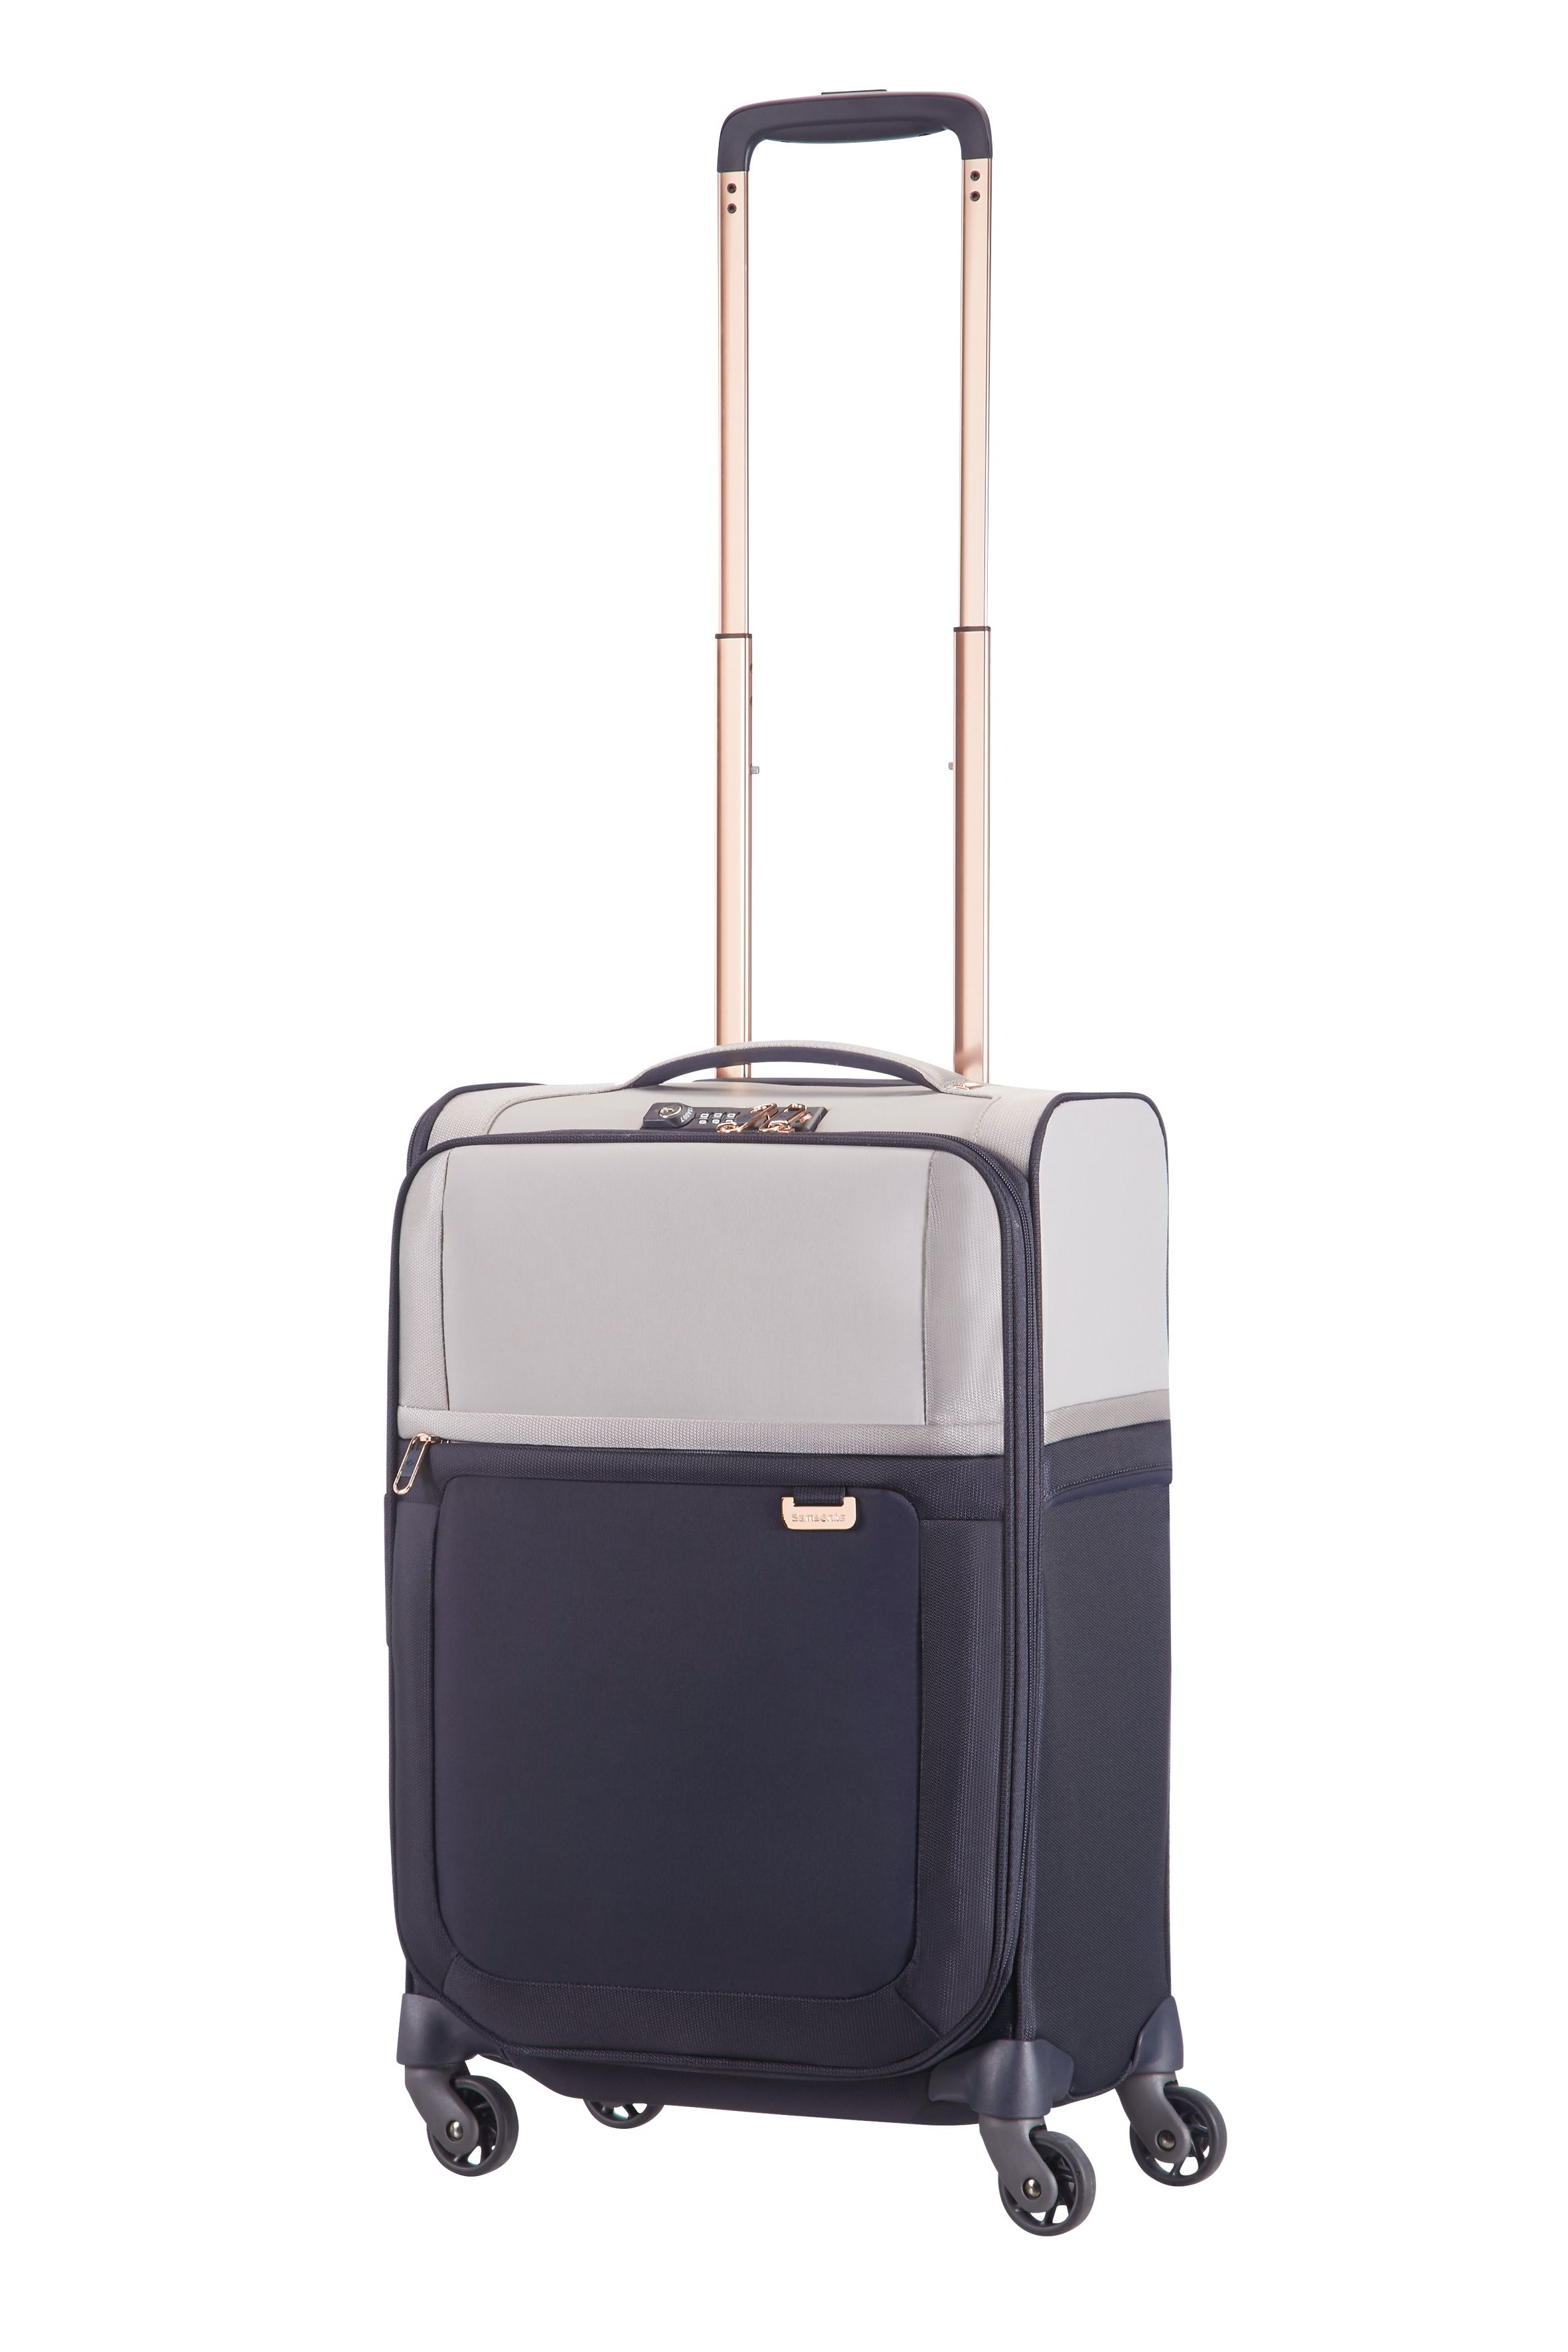 carry delsey blue cabin suitcase best en on cabins other view bag prices luggage dauphine